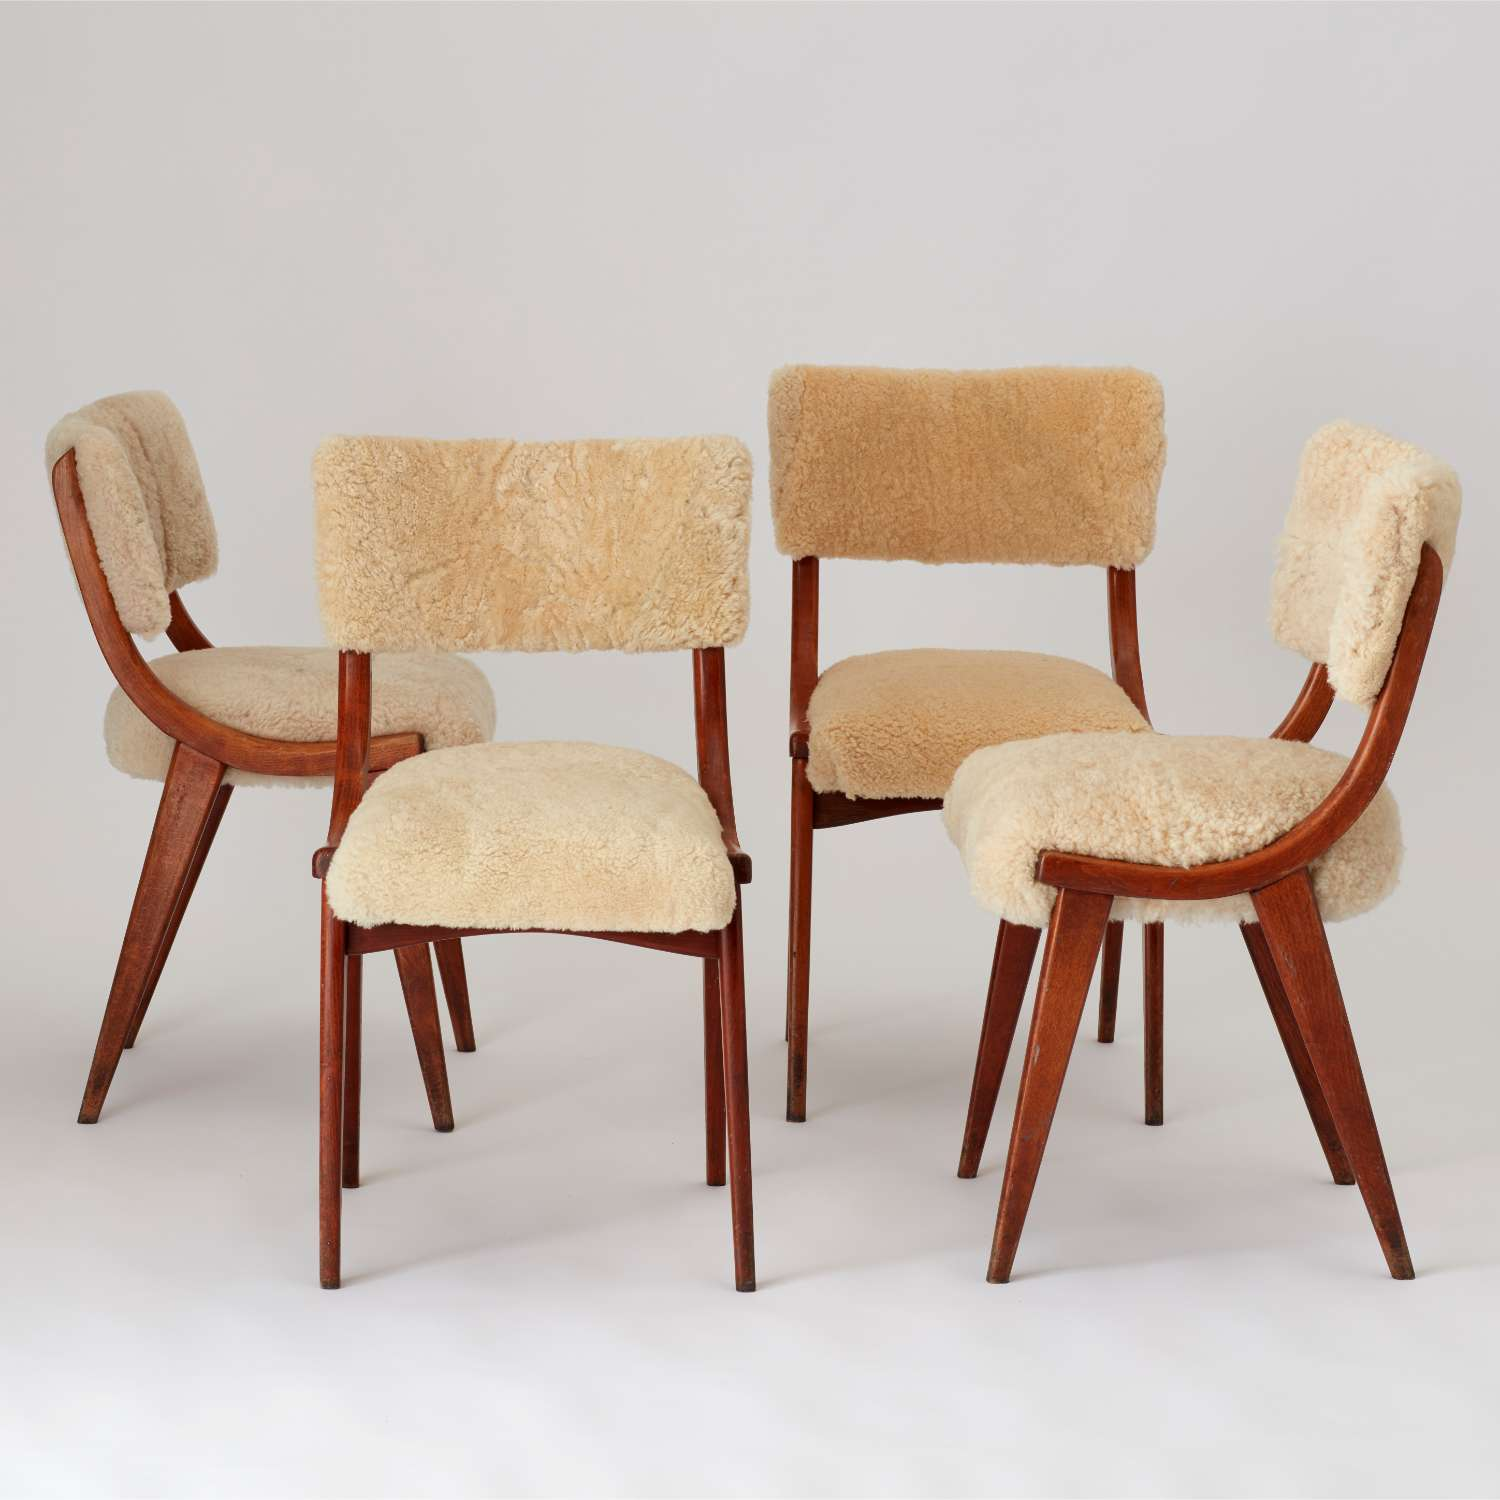 Set of four vintage Danish chairs hand upholstered in recycled sheepskin AU Bespoke